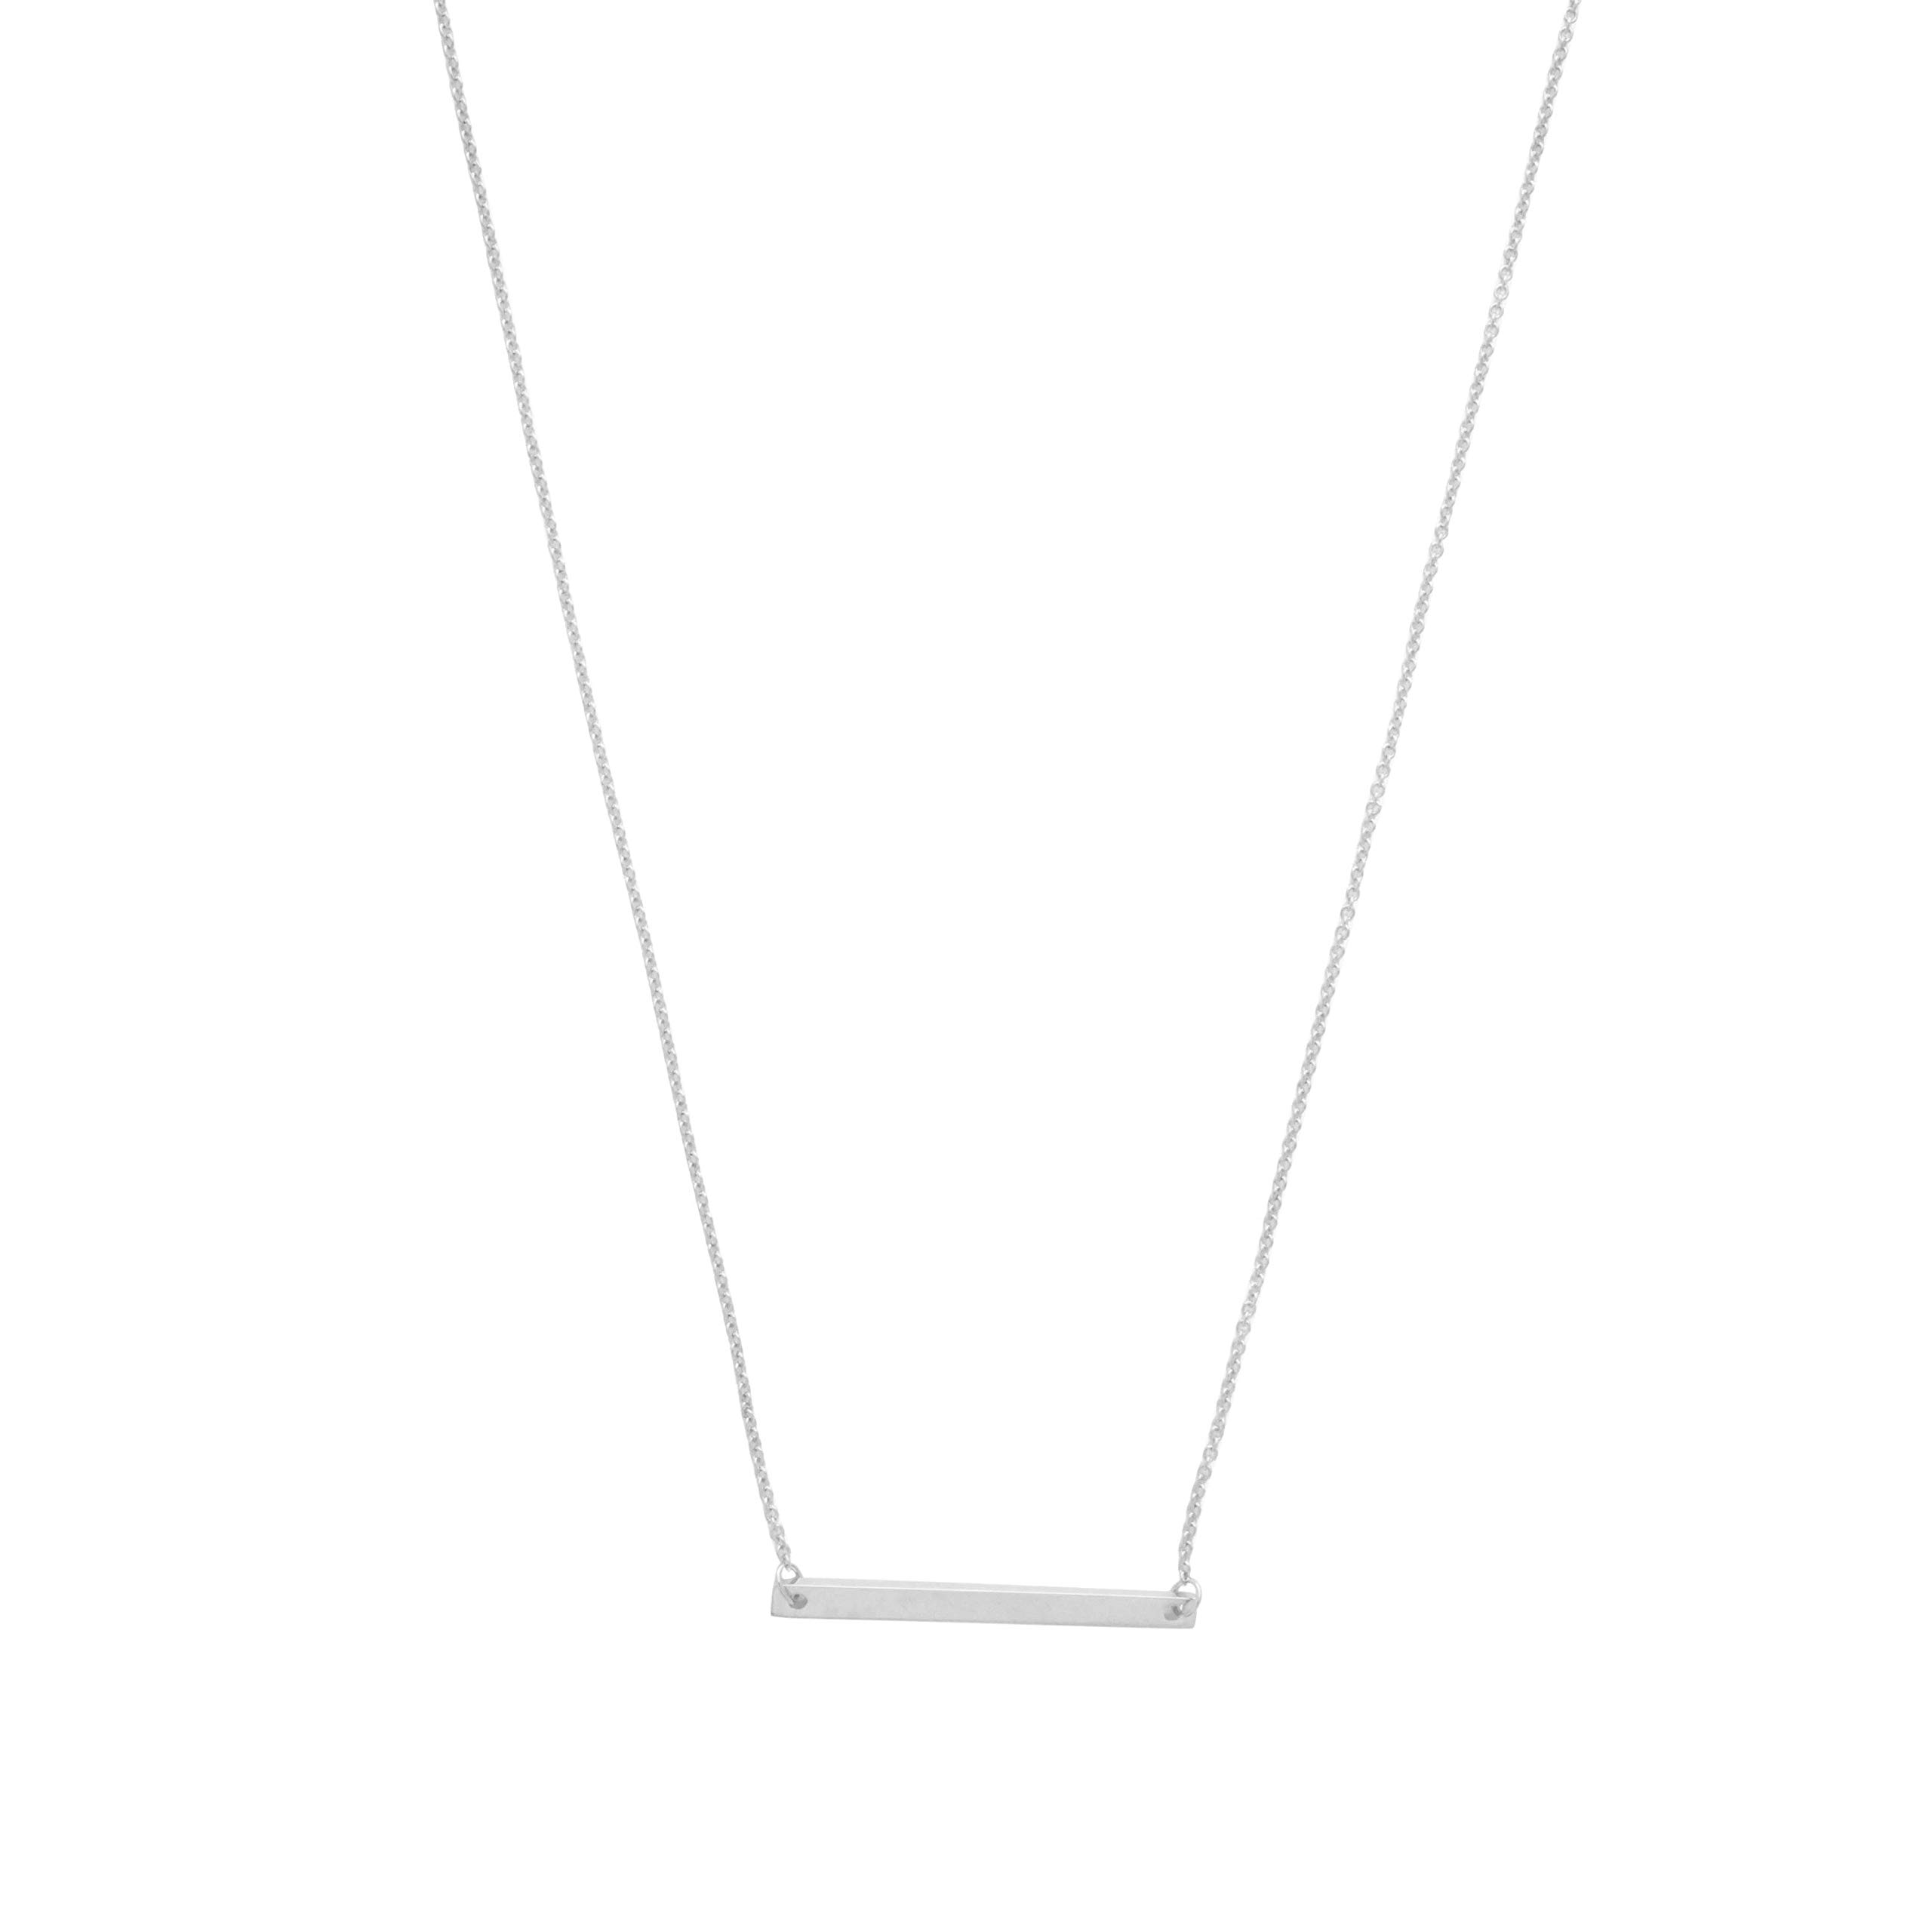 HONEYCAT 24k Gold Plated, 18k Rose Gold Plated, or Silver Classic Horizontal Bar Necklace | Minimalist, Delicate Jewelry (Silver)